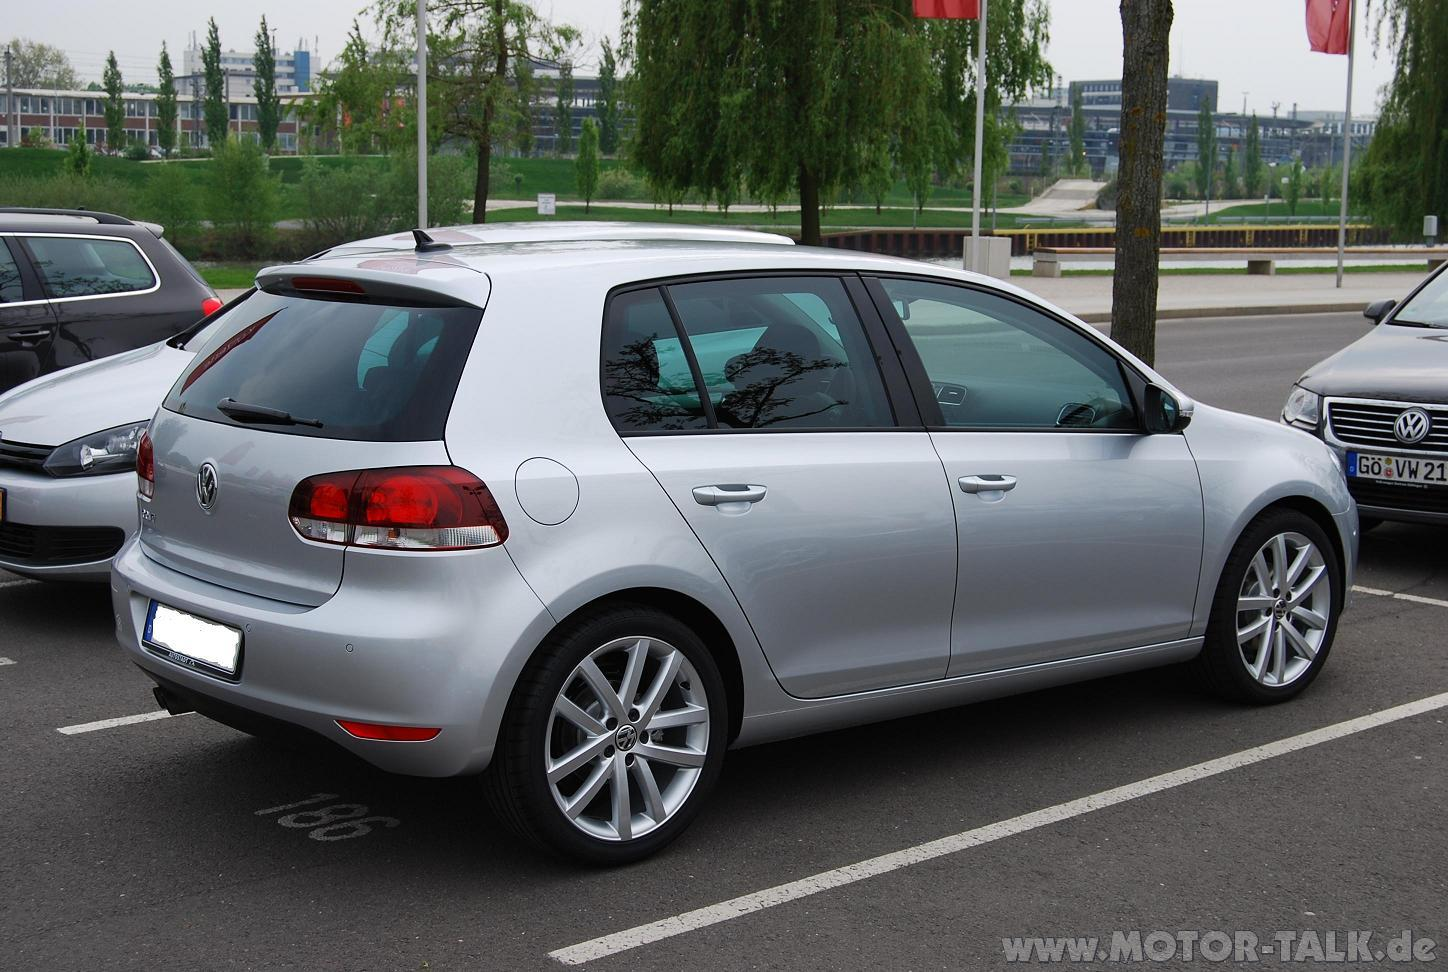 vw golf vi hl 2 0 tdi 001 mein golf vi ist da fotos berichte vw golf 6 202880879. Black Bedroom Furniture Sets. Home Design Ideas